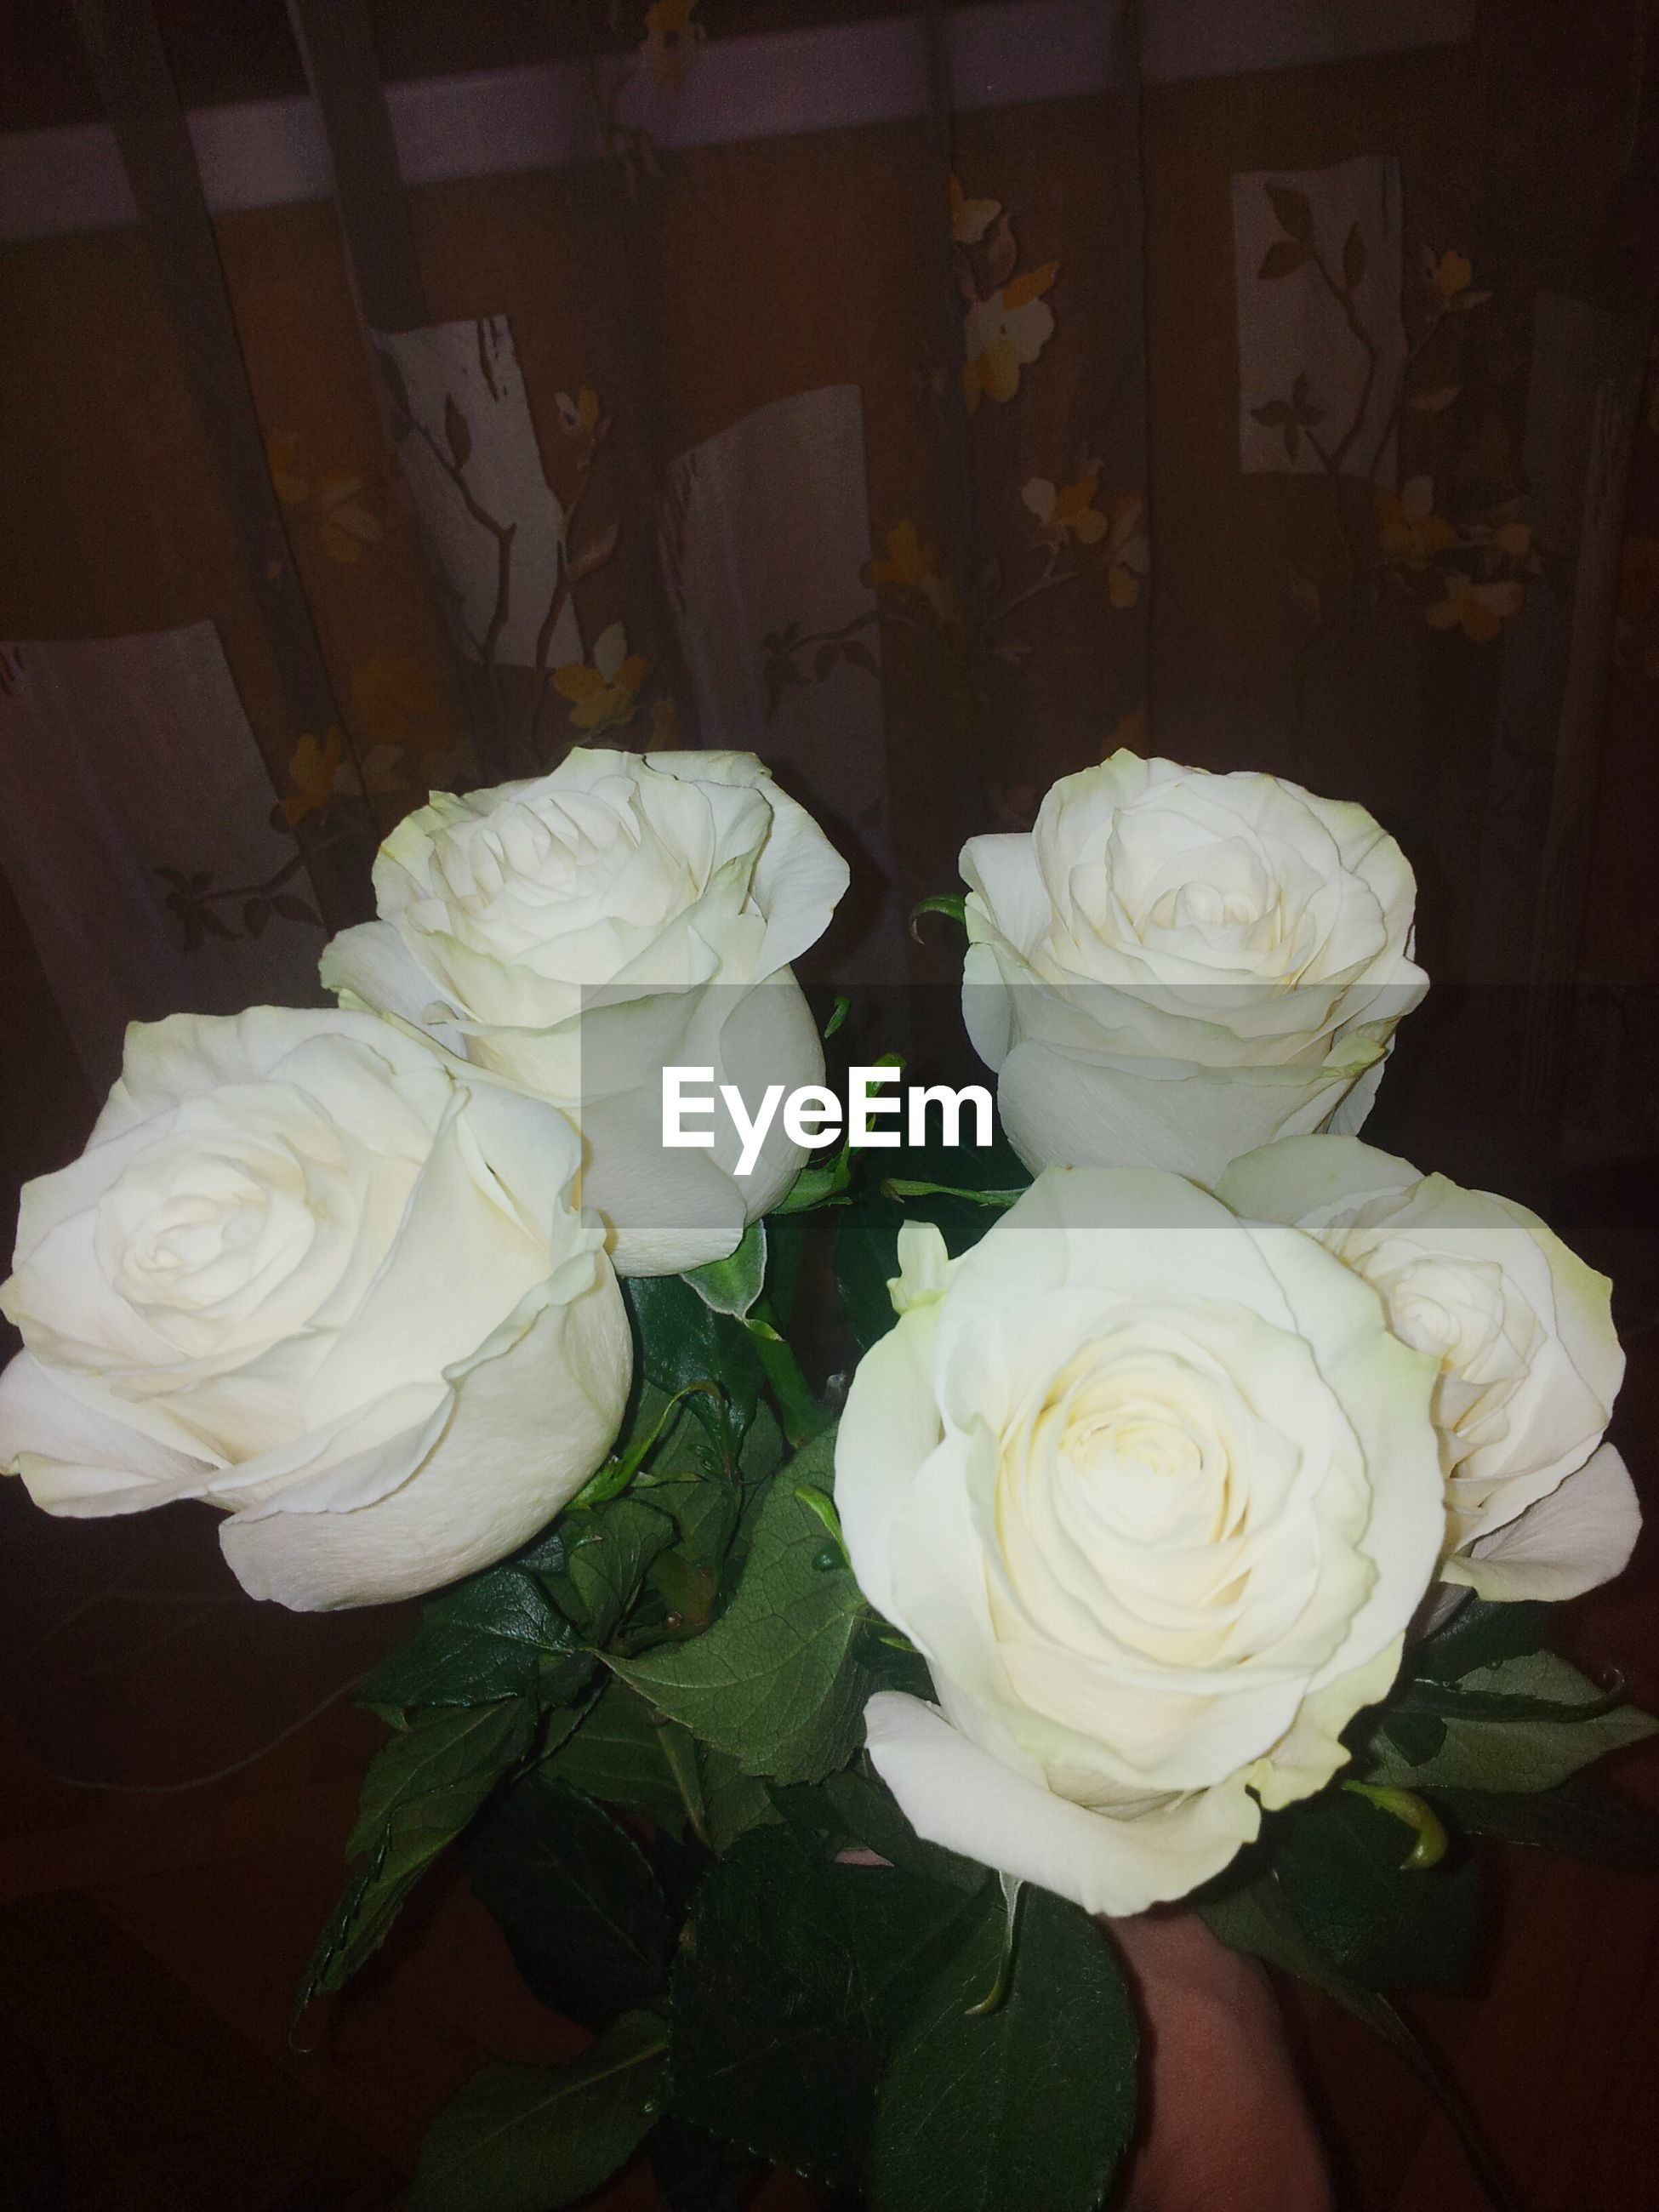 flower, petal, rose - flower, flower head, fragility, freshness, indoors, beauty in nature, rose, white color, close-up, growth, high angle view, blooming, nature, bunch of flowers, bouquet, plant, blossom, no people